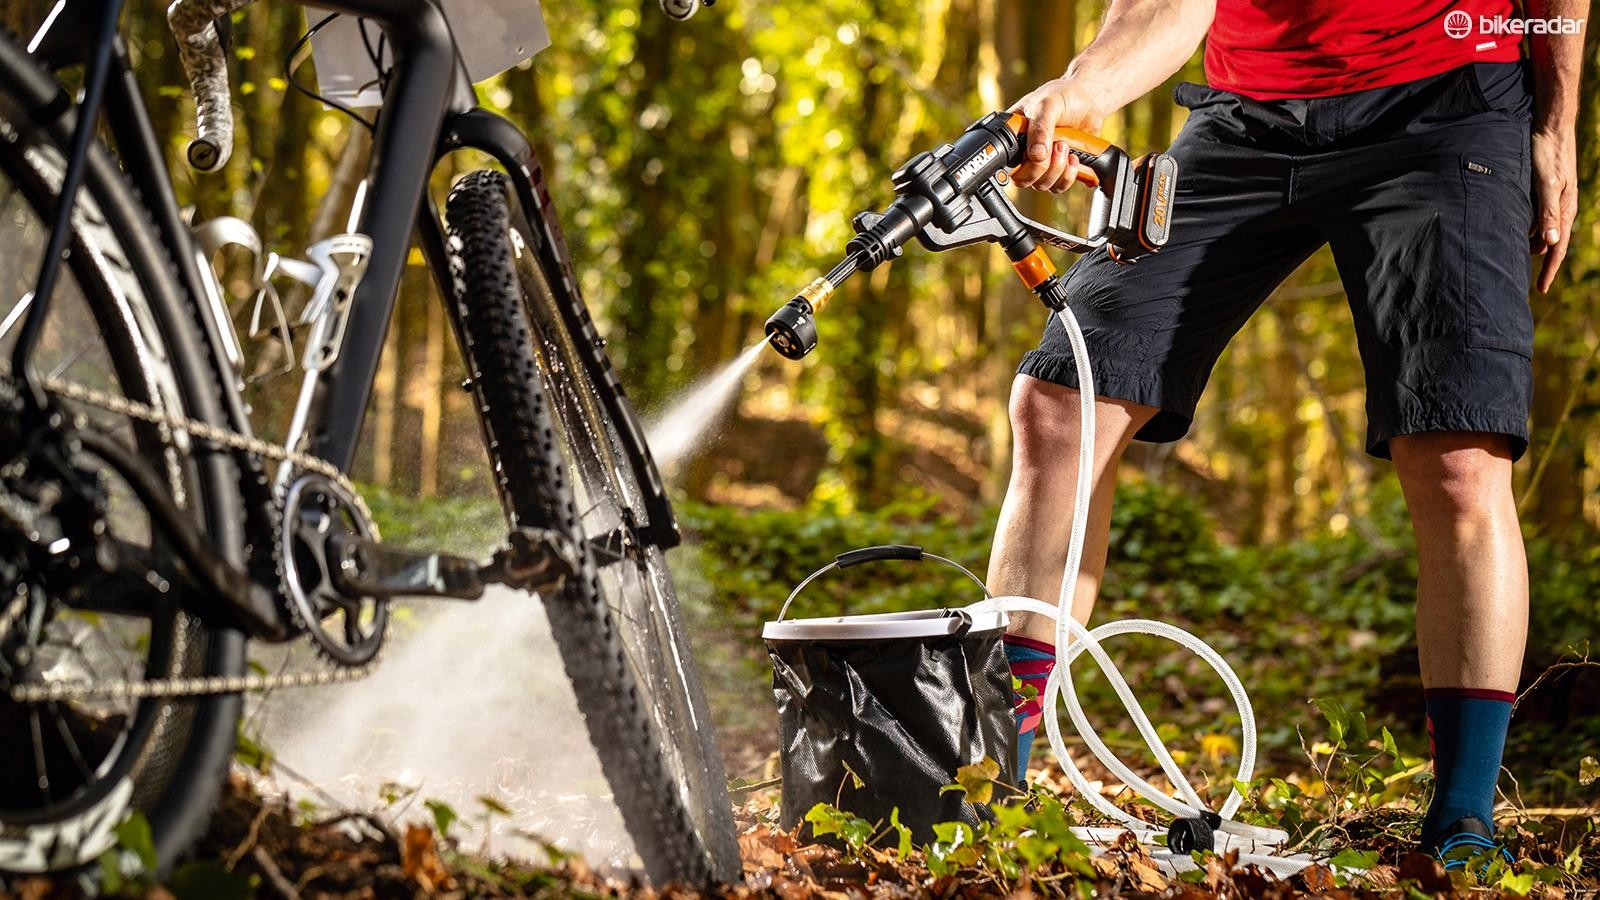 With up to 10 times the pressure of a garden hose, the Hydroshot strips mud from the filthiest bikes